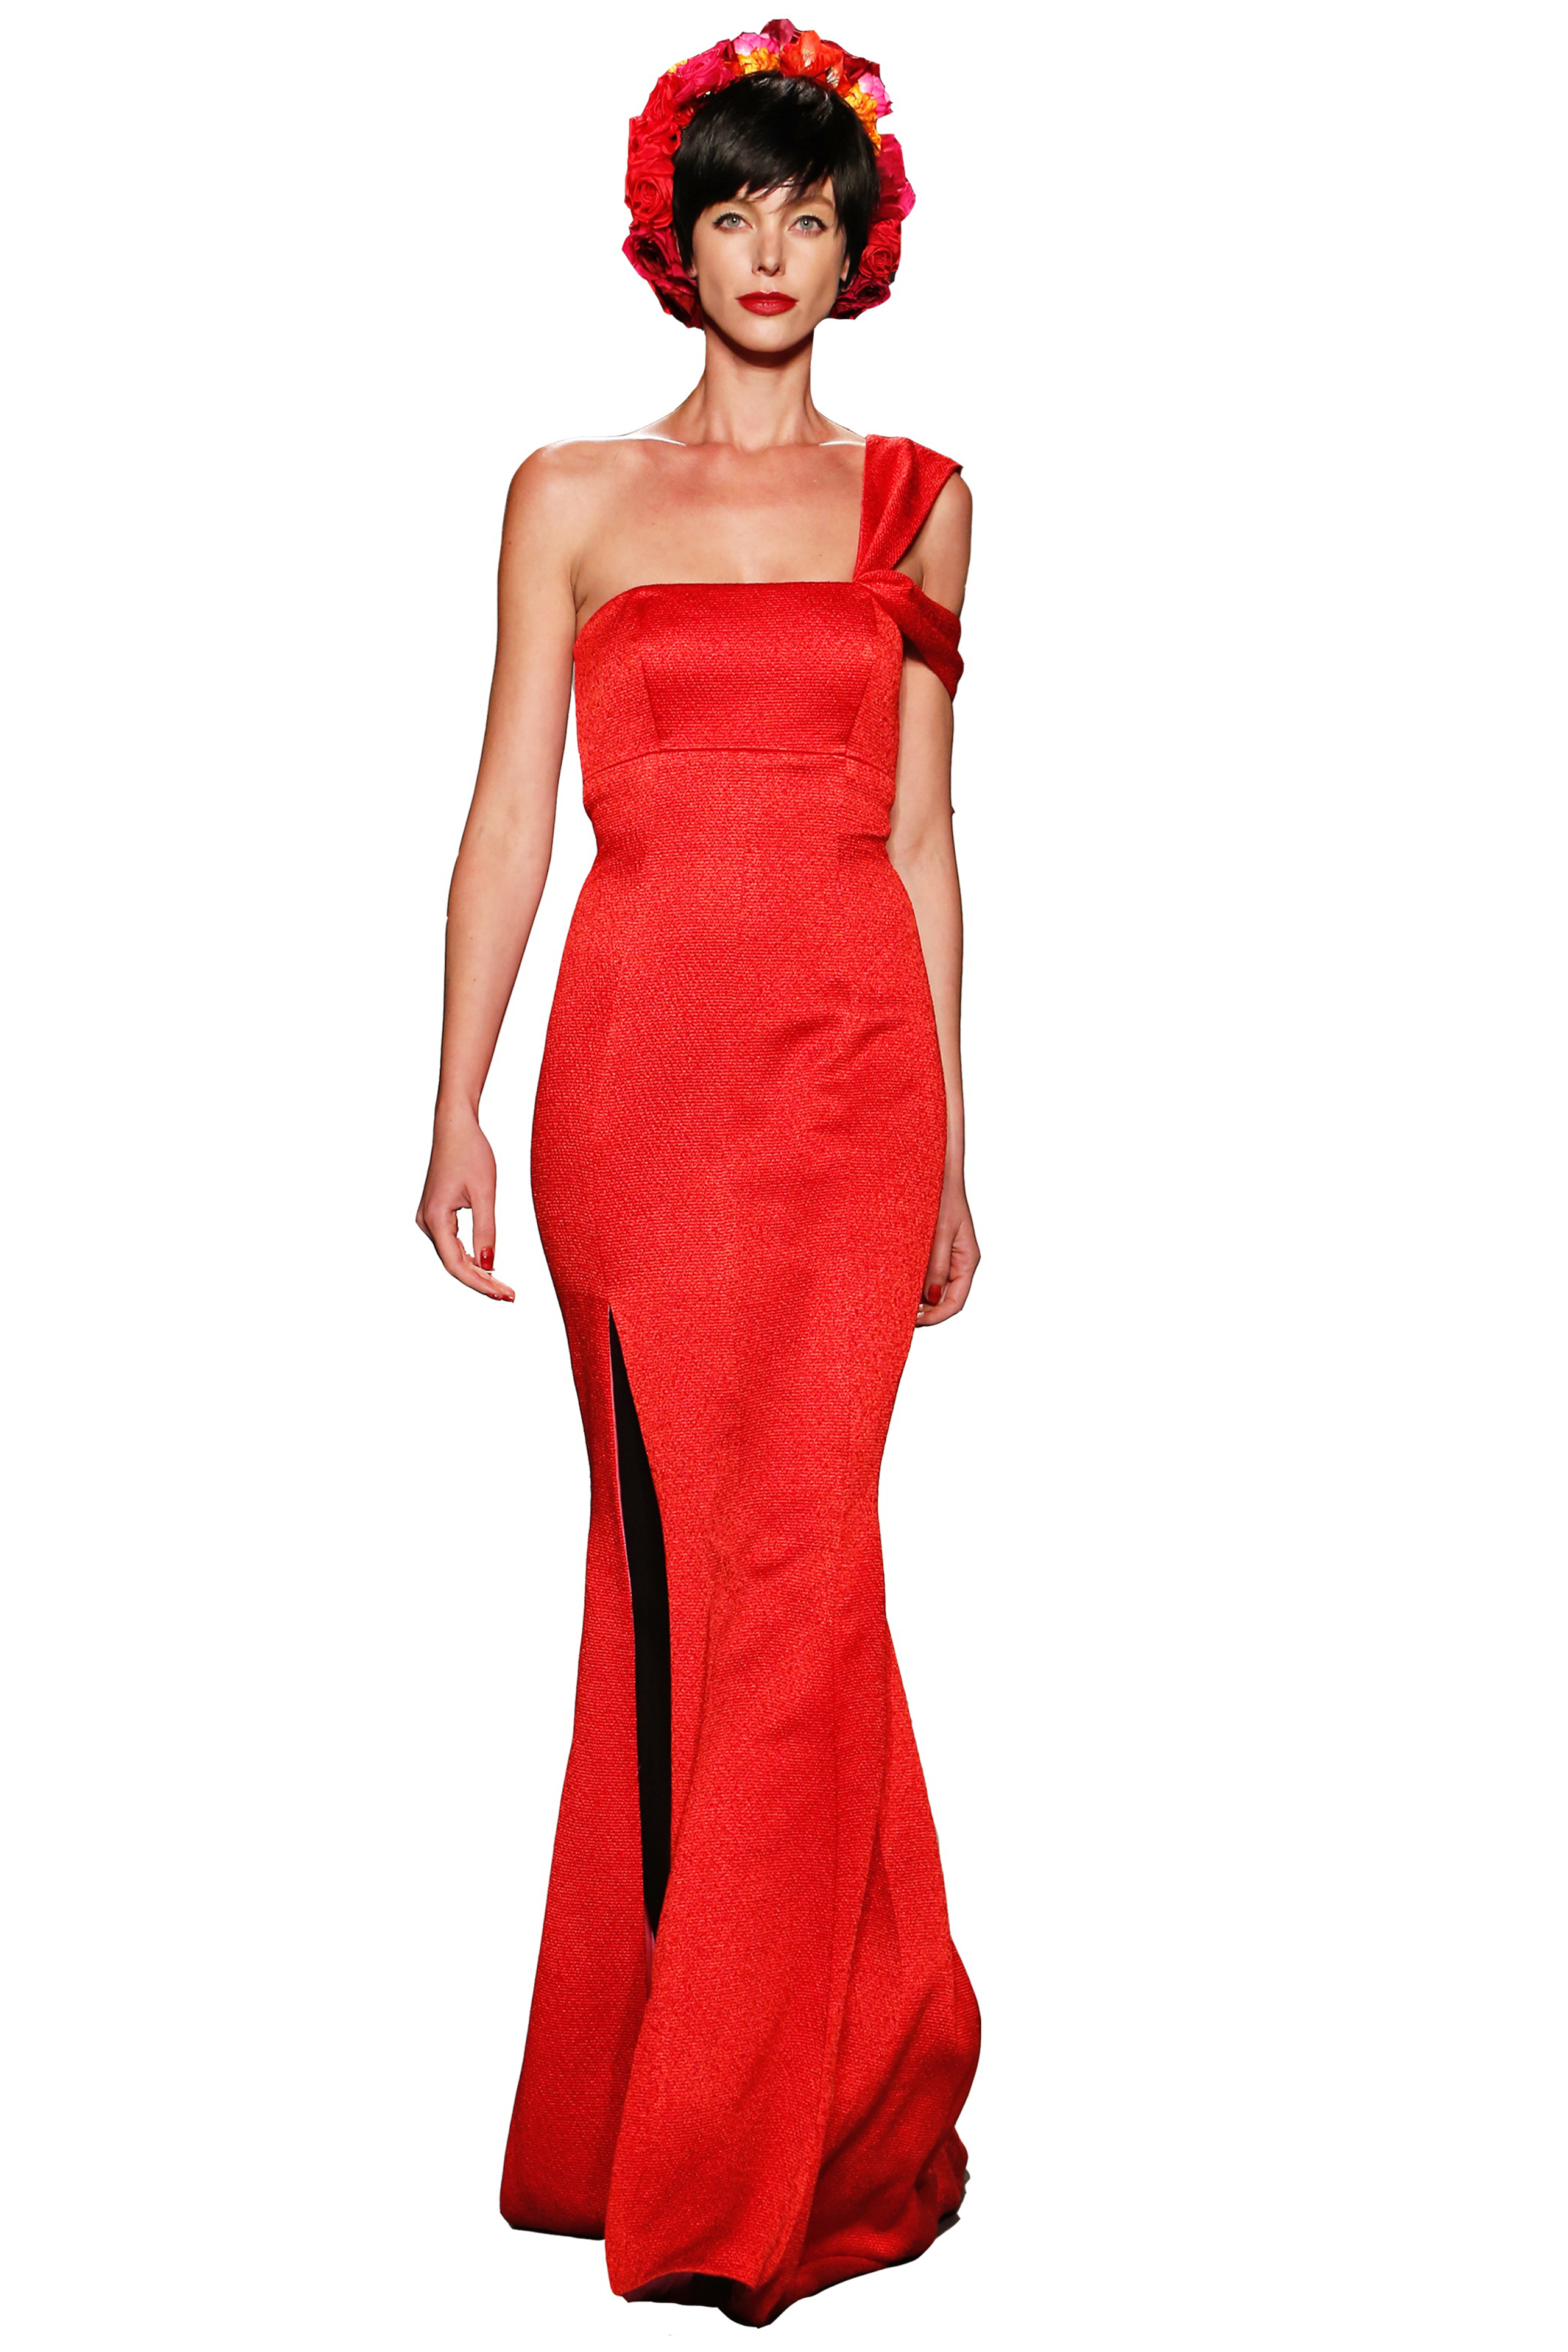 6666d36185a0e2 Haute red couture silk ottoman side-slit gown with assumption draped  shoulder straps and trails lined with hot pink silk satin